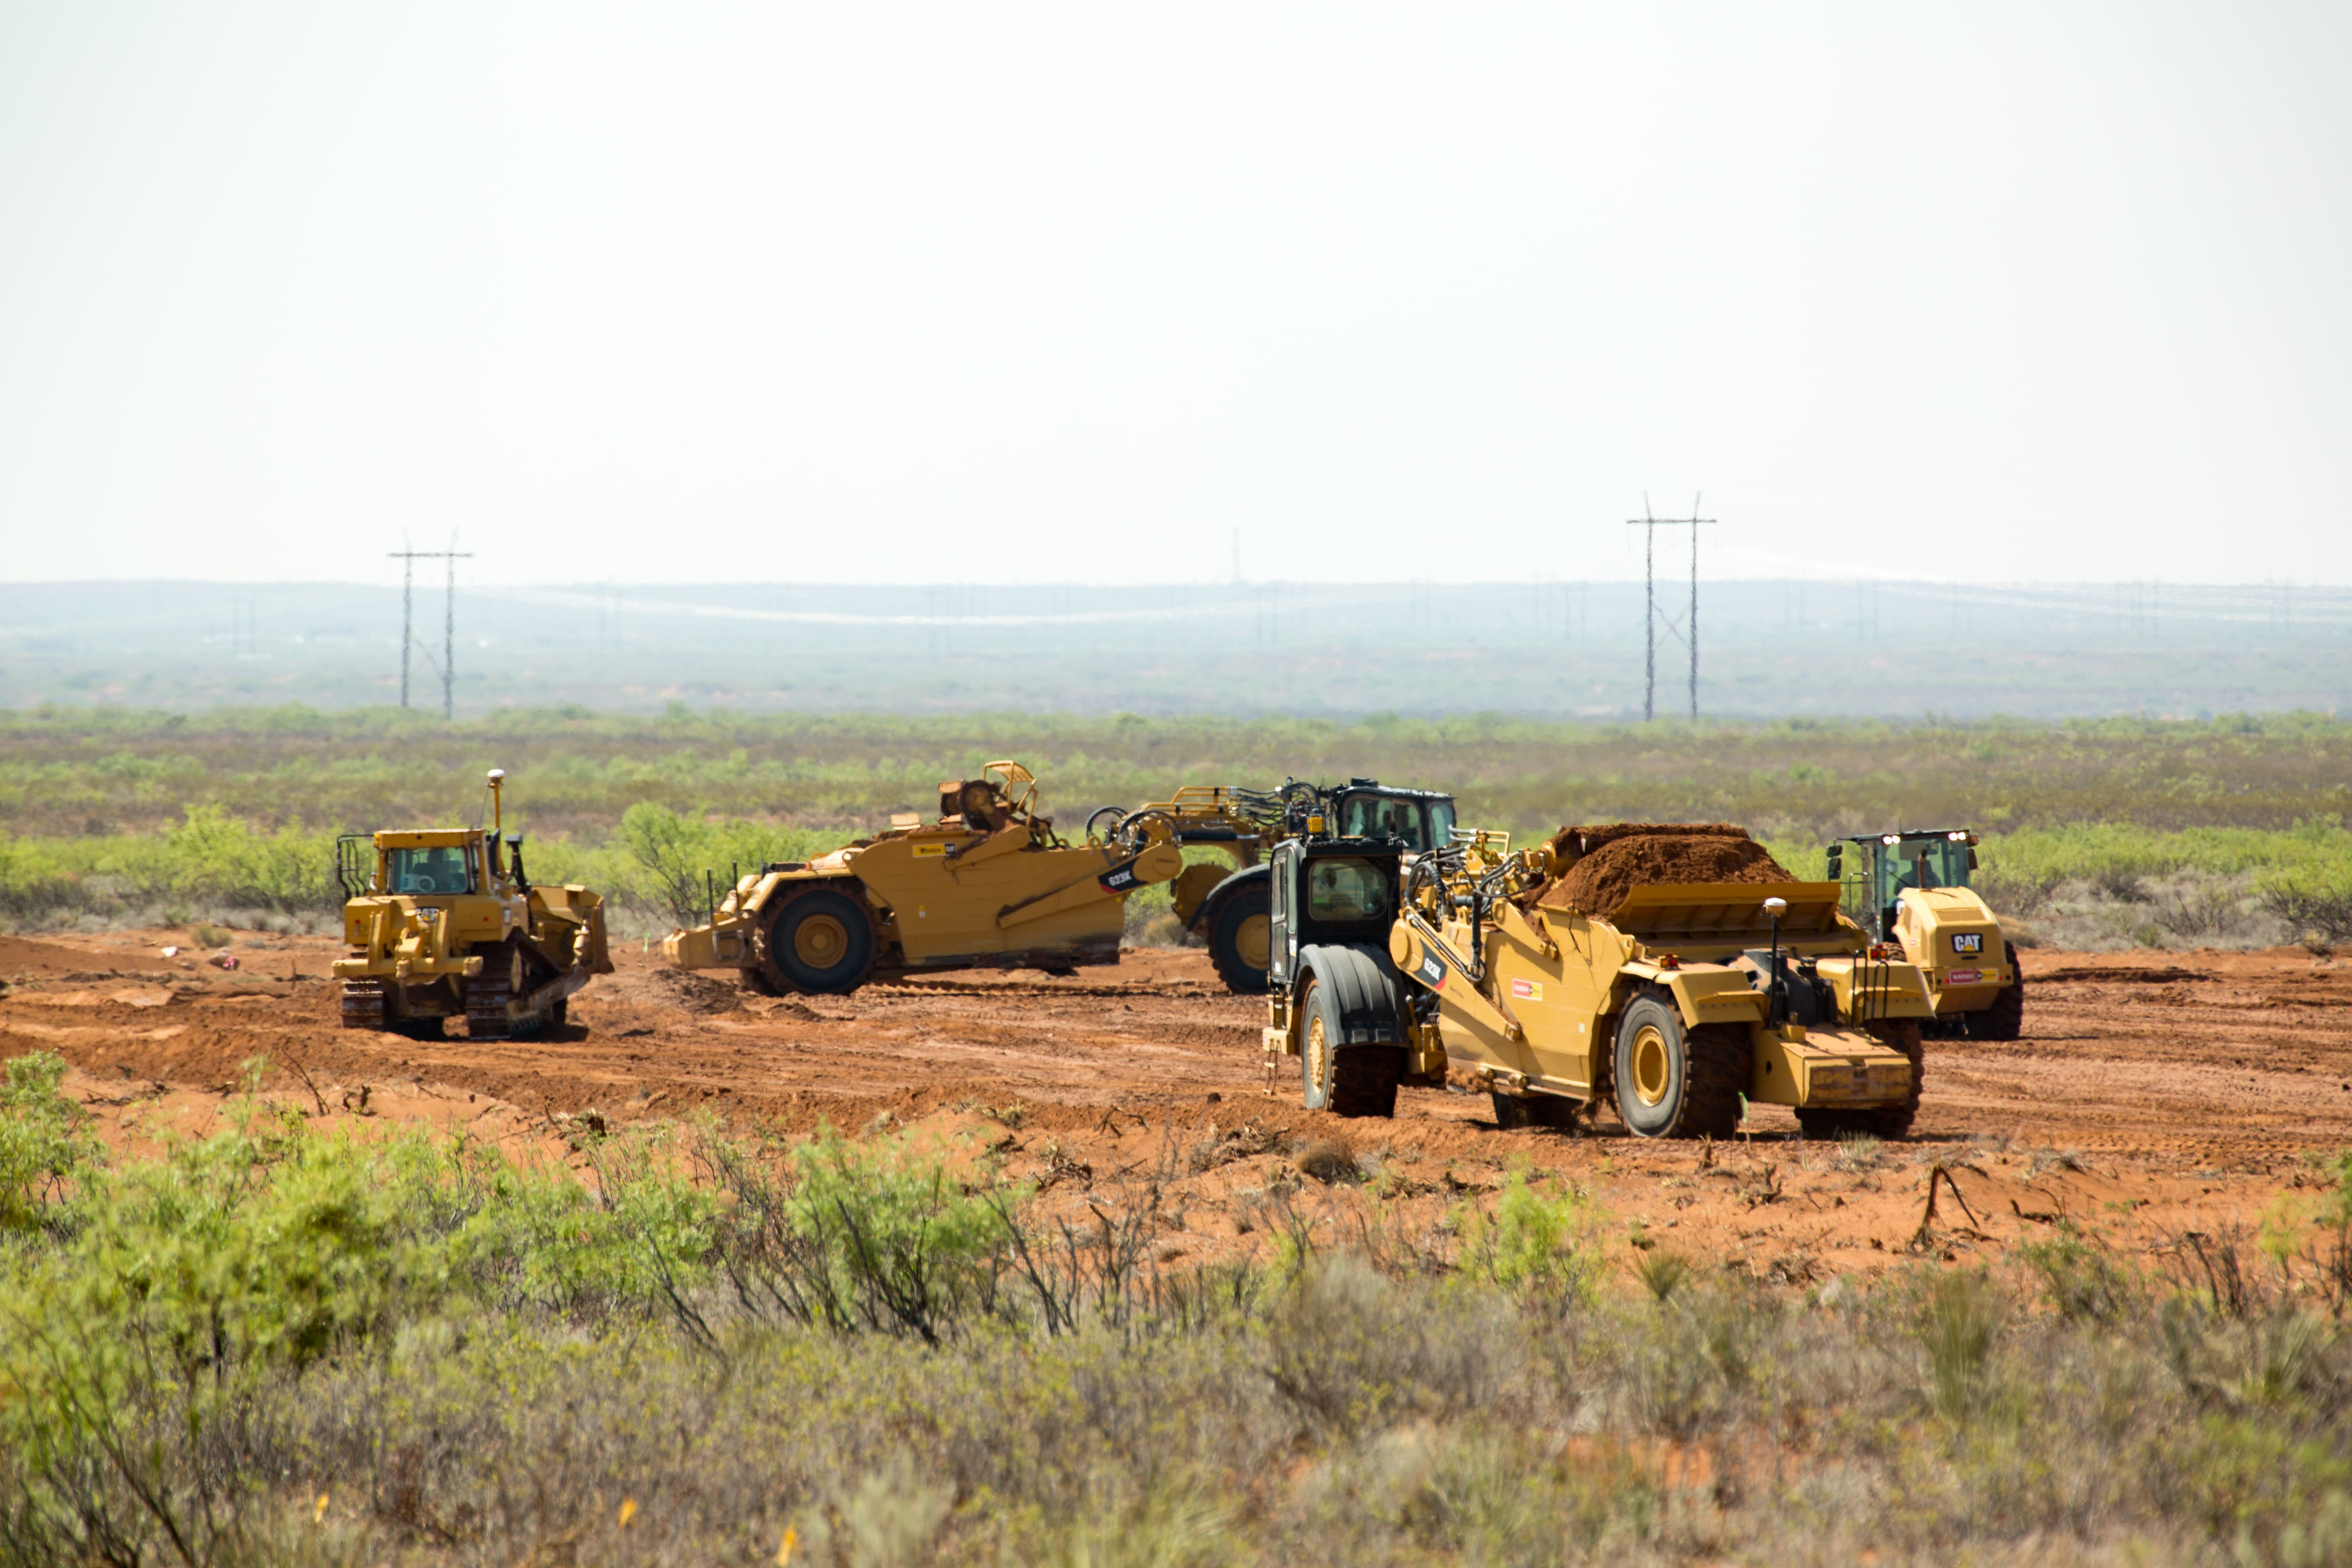 Public land near Carlsbad, N.M., is cleared for oil and gas development. Wayne Smith, who leased it for ranching before his death in October, said he never received notification of the construction there. (Robin Zielinski for the Center for Public Integrity)